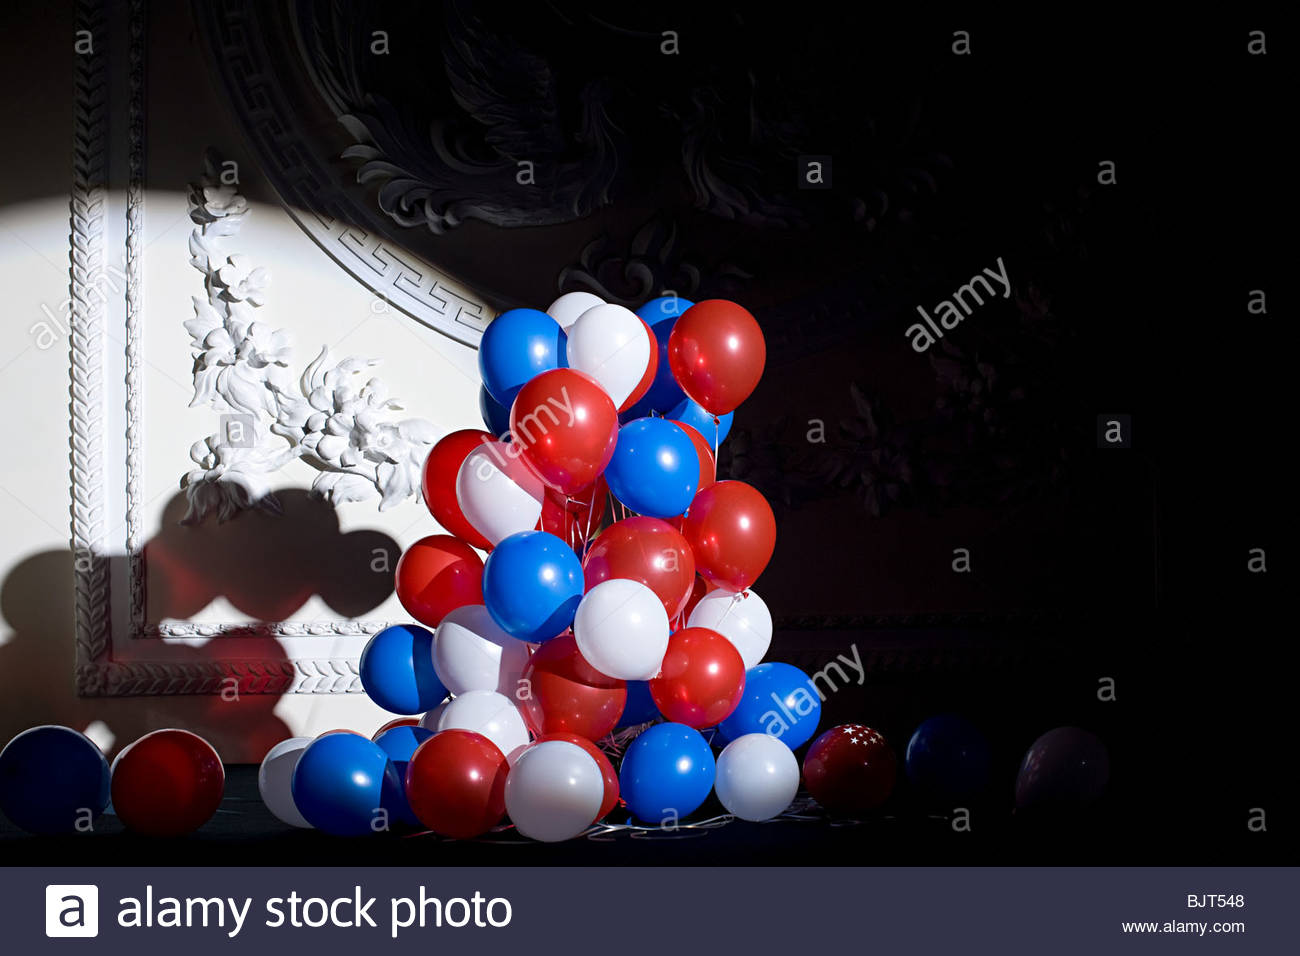 Balloons - Stock Image